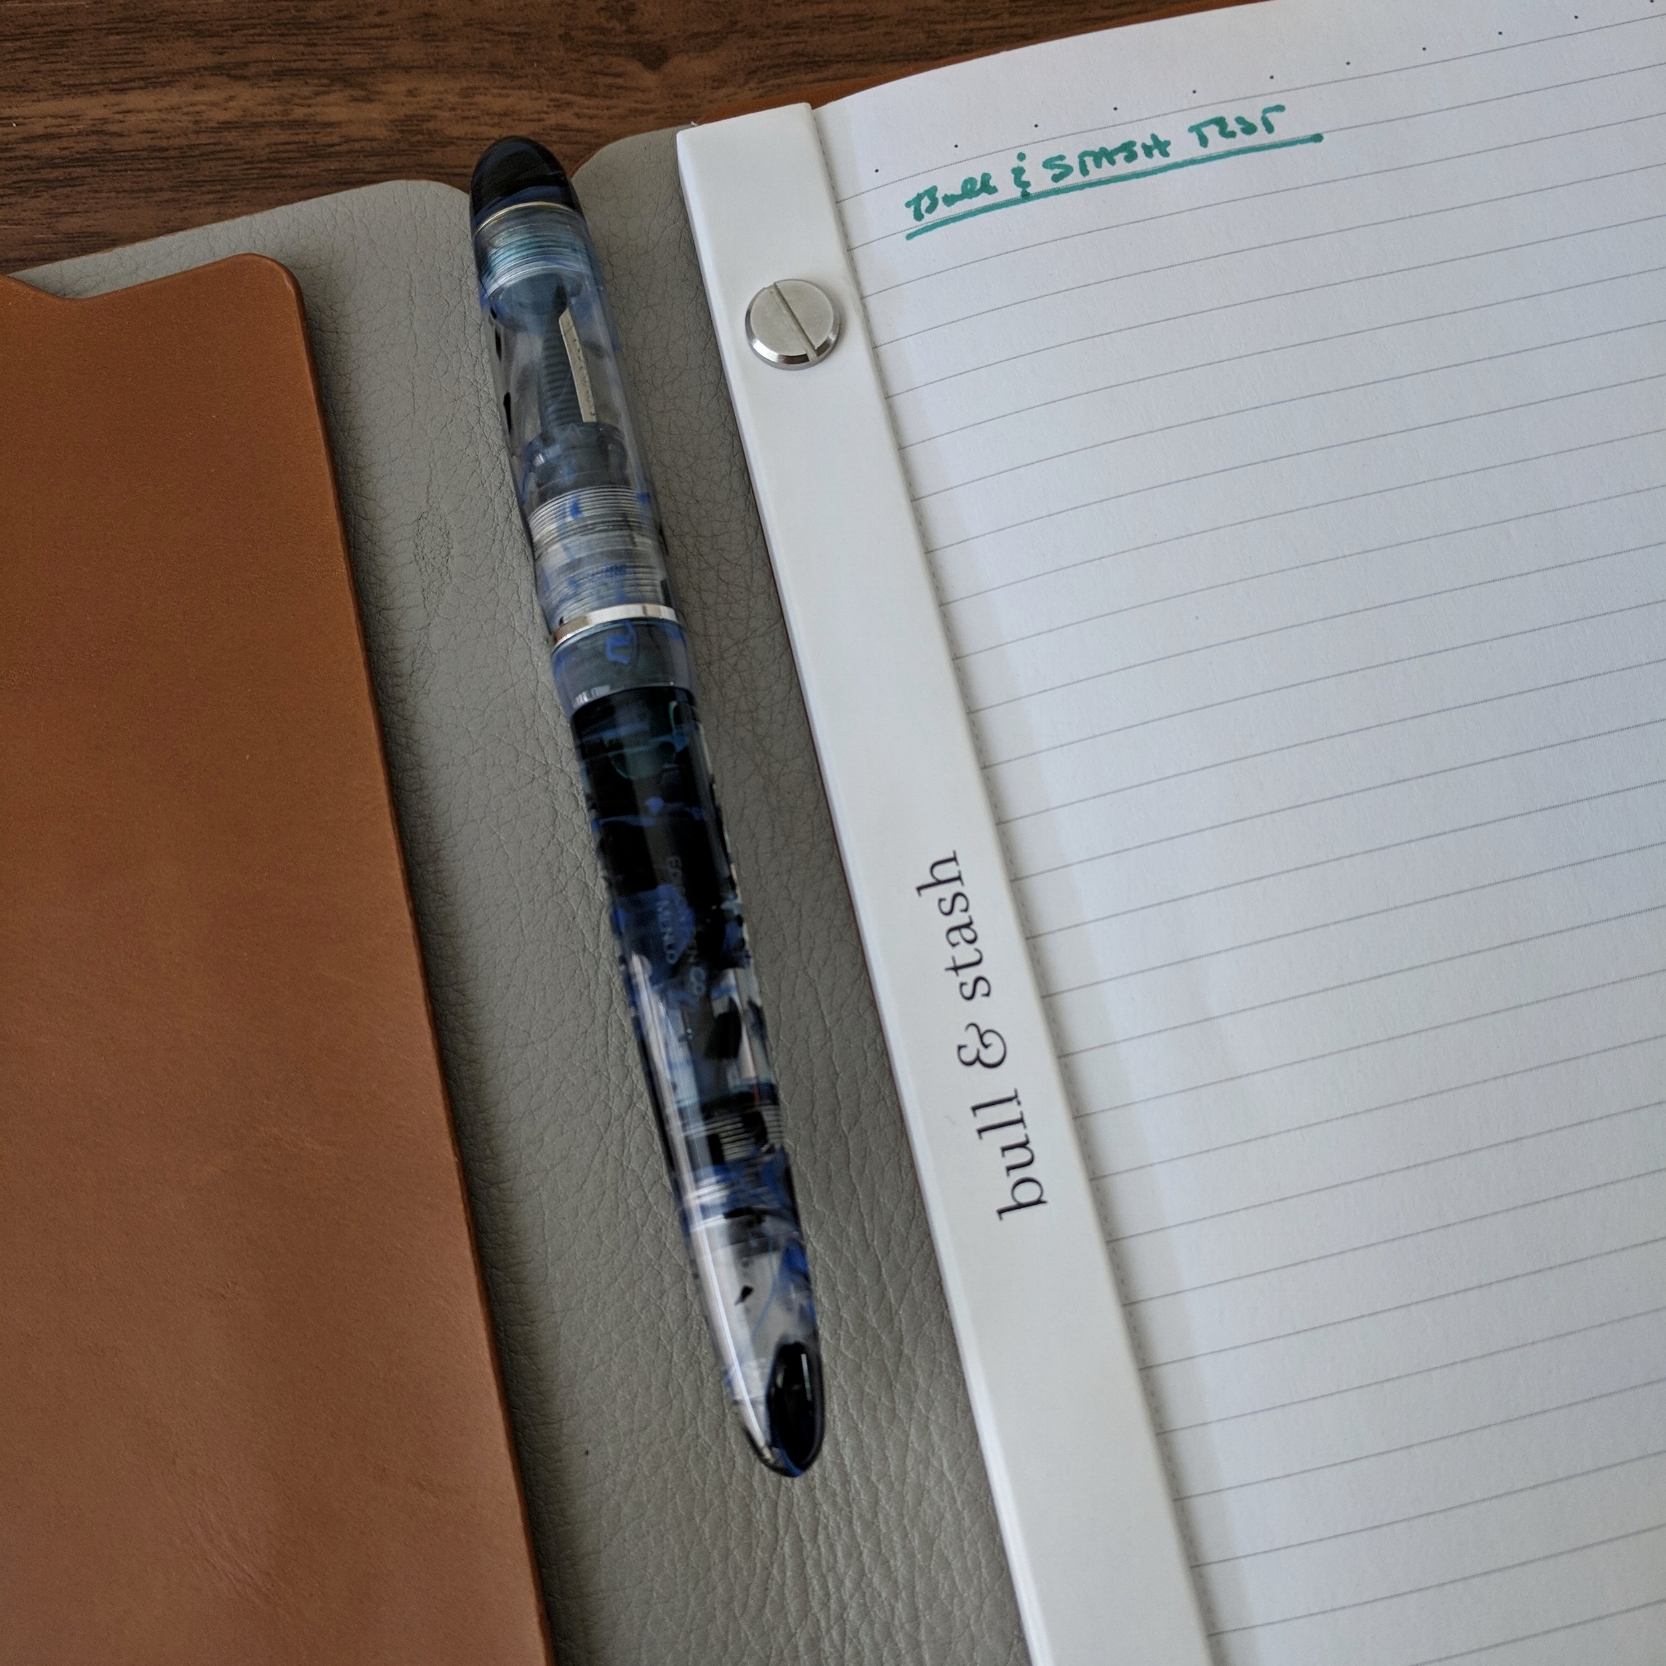 The design of the Bull & Stash Leonard makes it very easy to clip a pen to the inside, even a moderately large pen  like this Edison Menlo . The notebook will still close with the pen, and the cover has magnets inside to keep it shut.